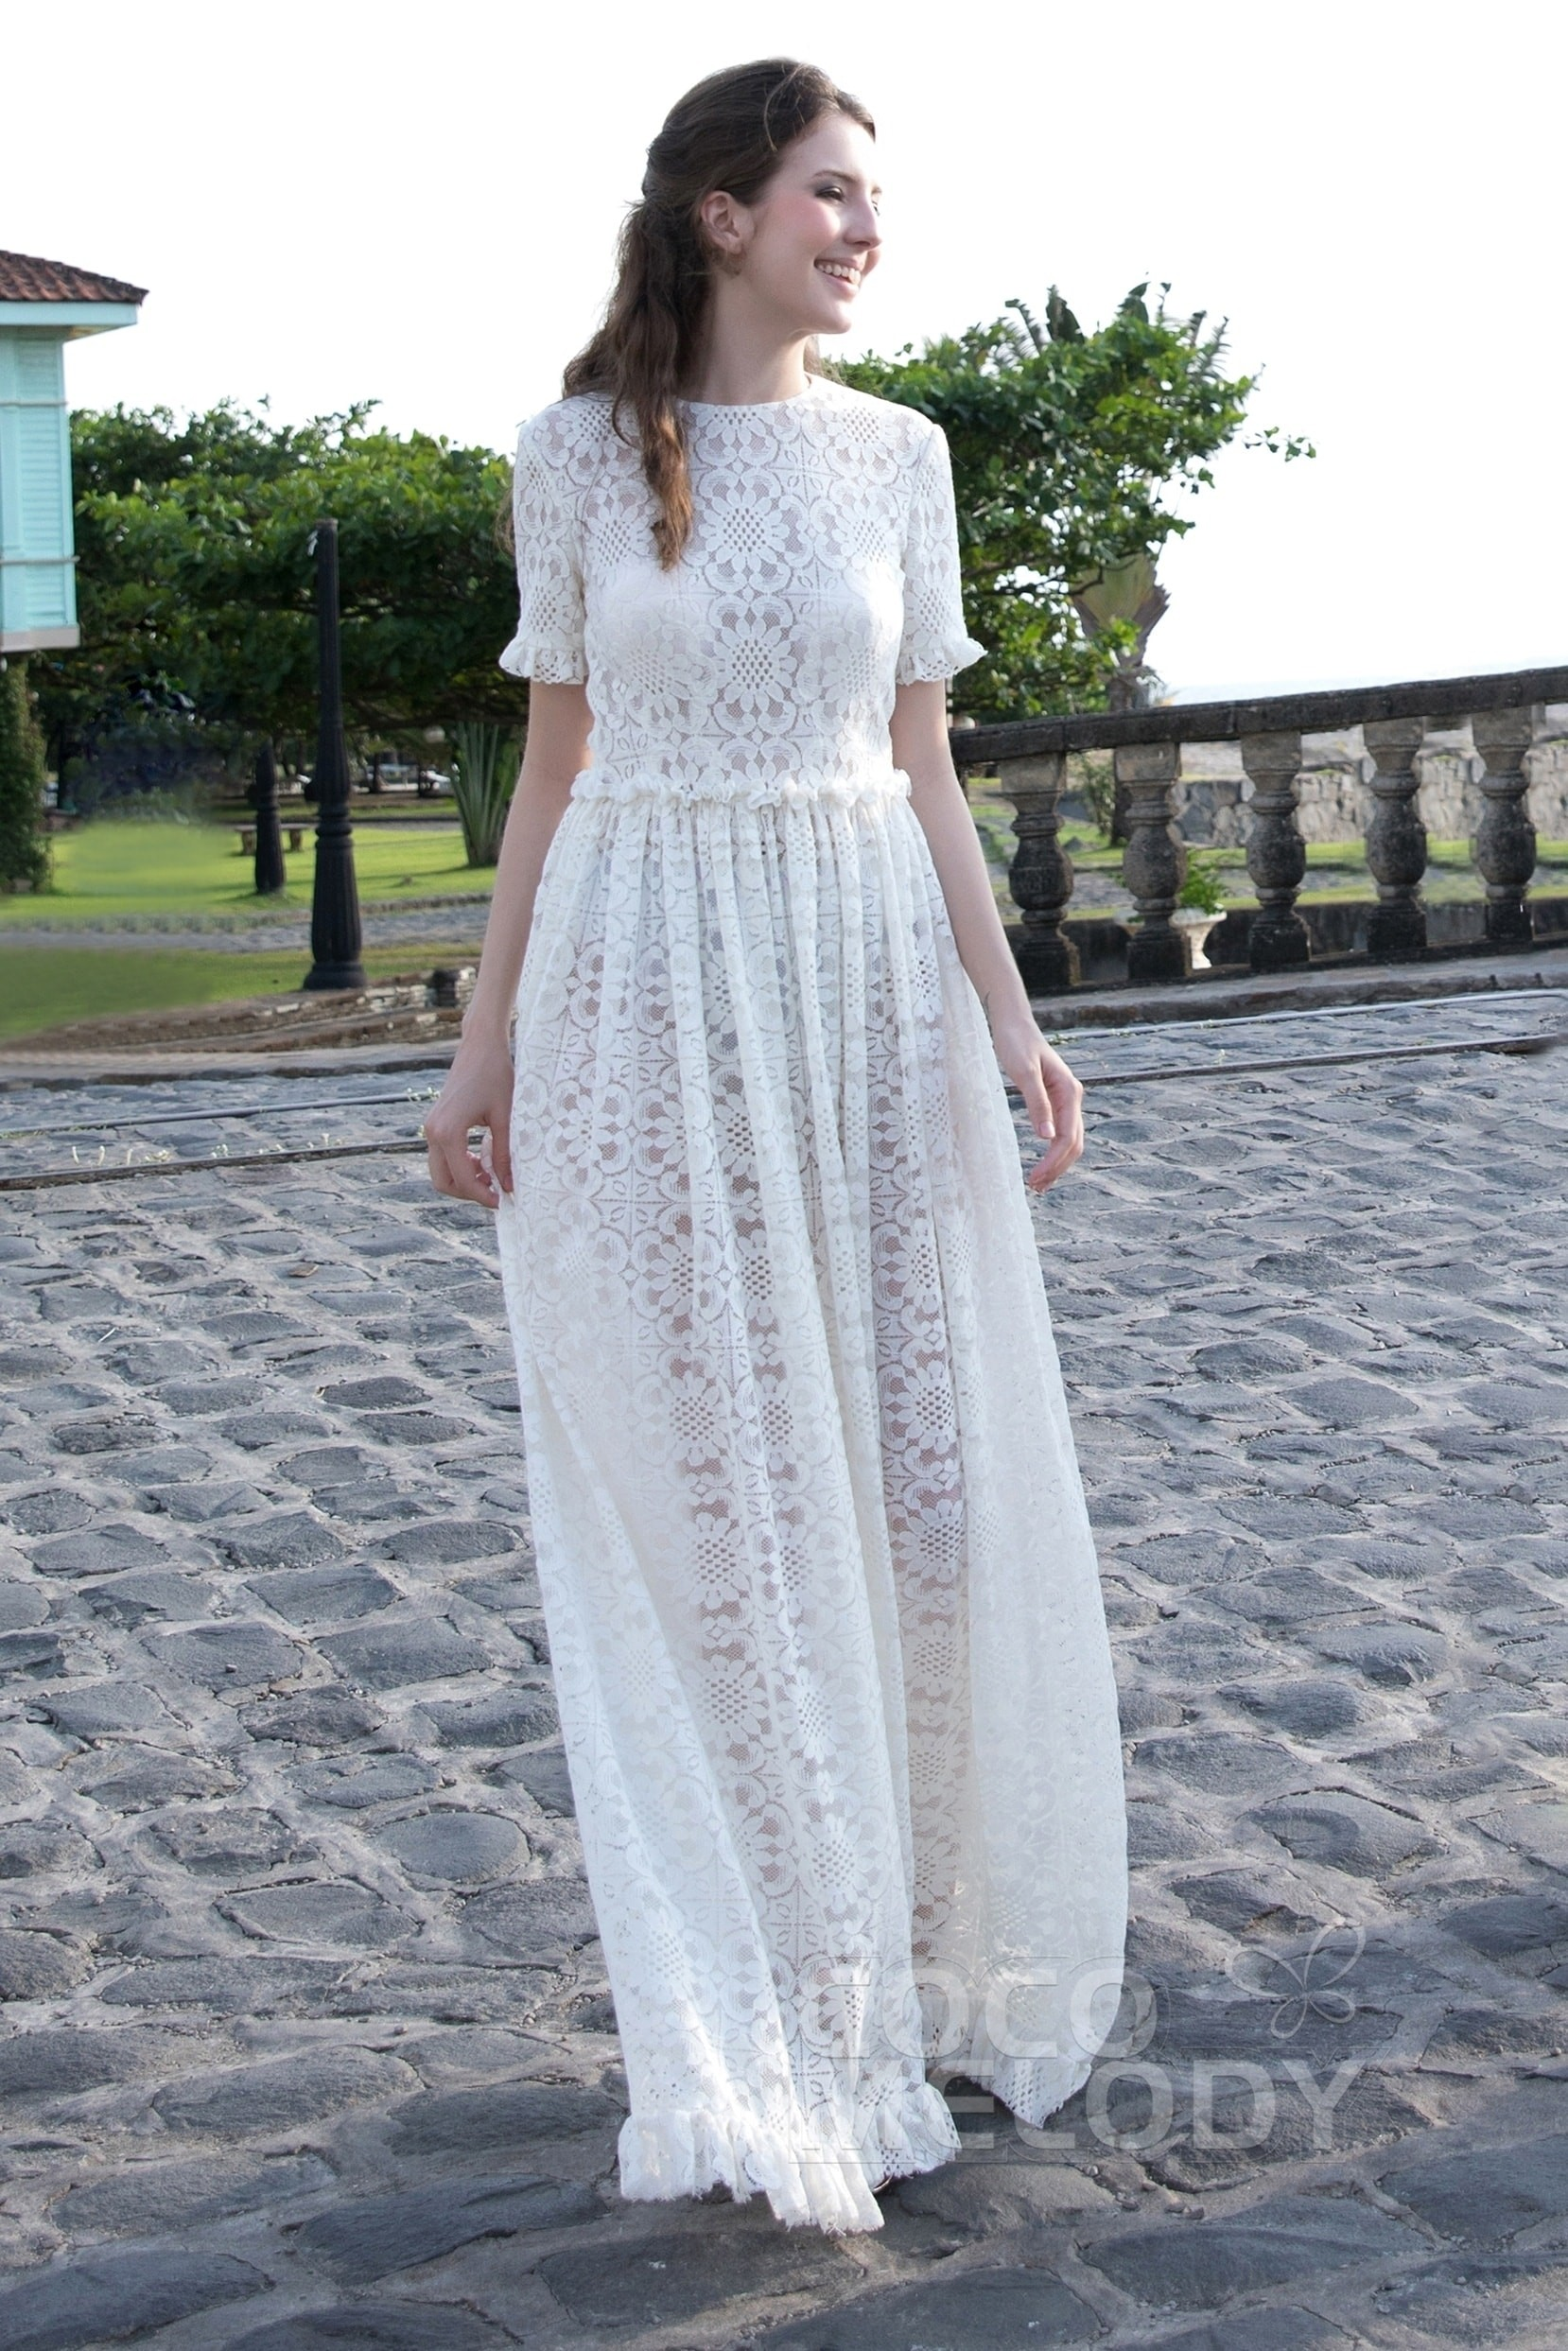 A-Line Floor Length Tulle Lace and Chiffon Wedding Dress - Bohemian wedding dress